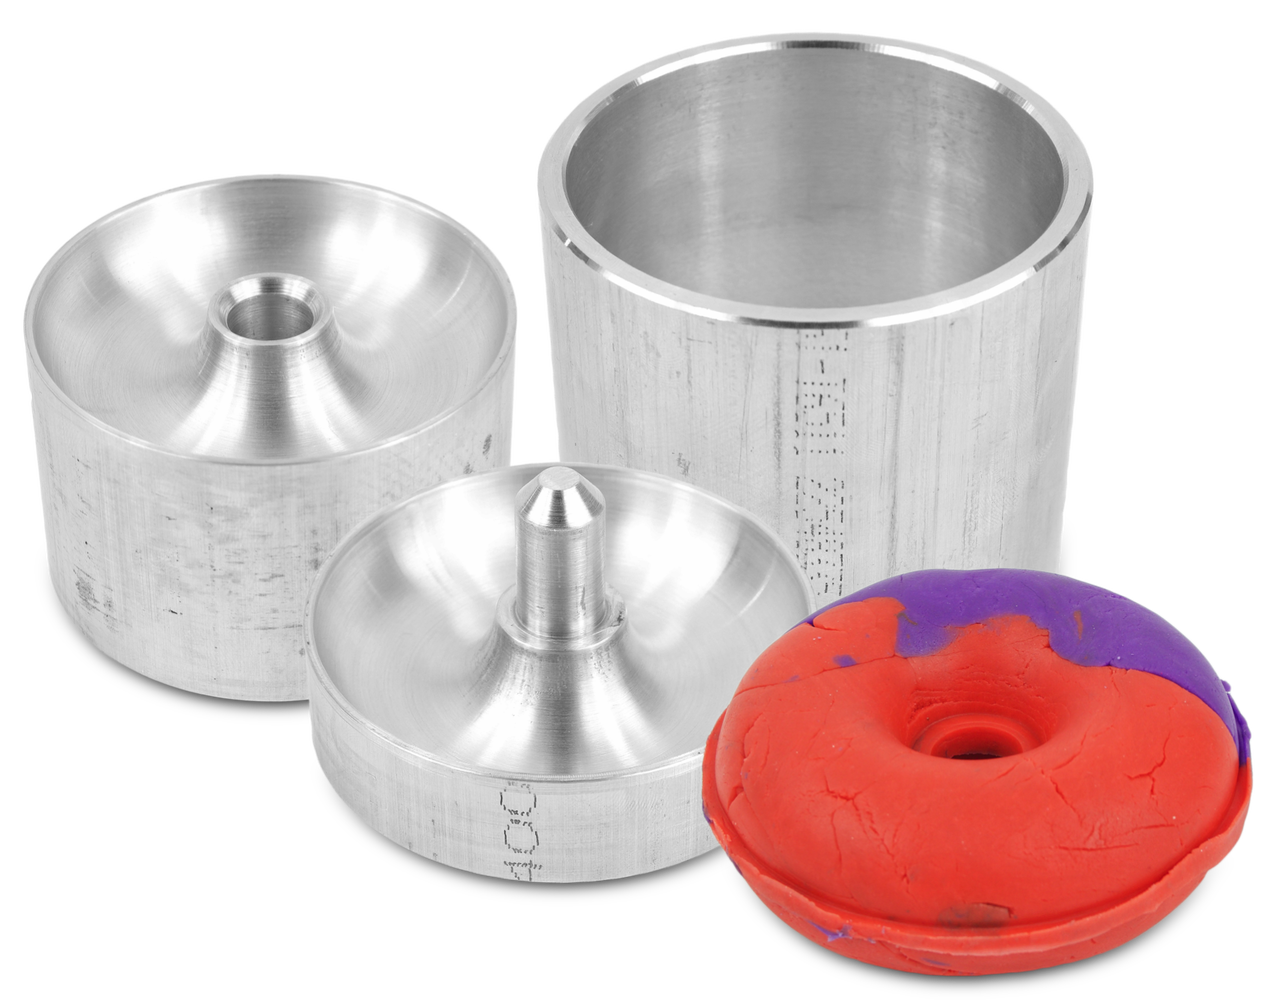 2 Pieces Assorted Size Metal Donut Bath Bomb Molds to Make Unique Cute Homemade or Business Bath Bombs DONUTS